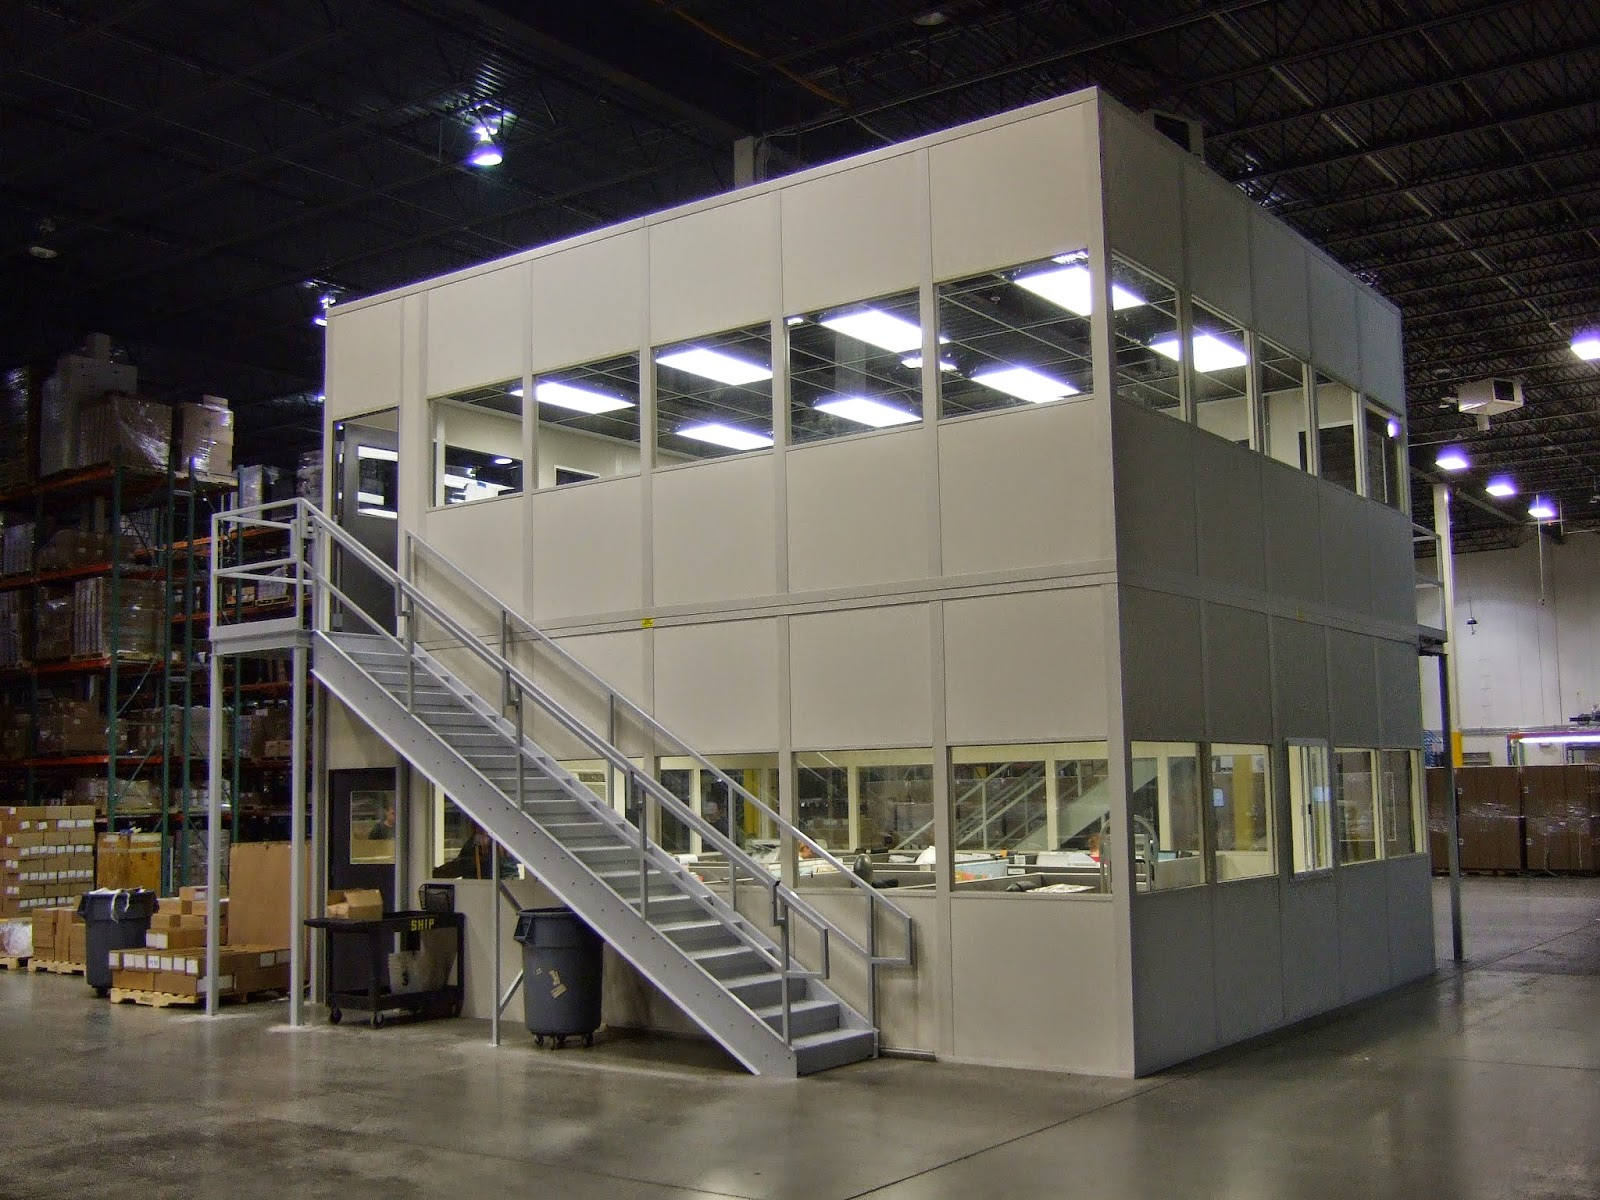 modular offices are prefabricated office structures that can be